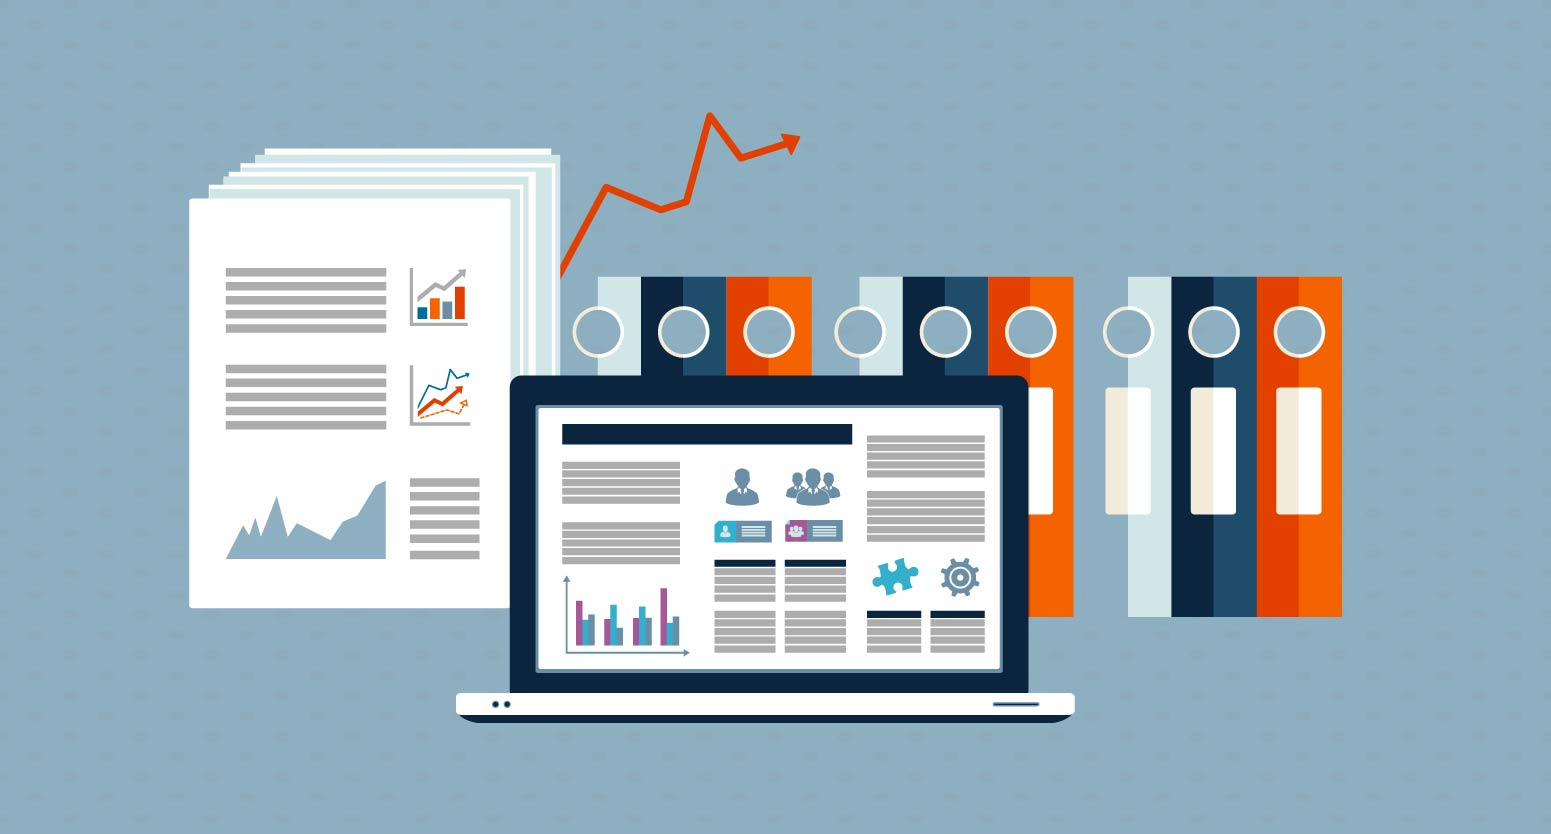 Why You Should Replace Excel with an Enterprise Reporting Tool